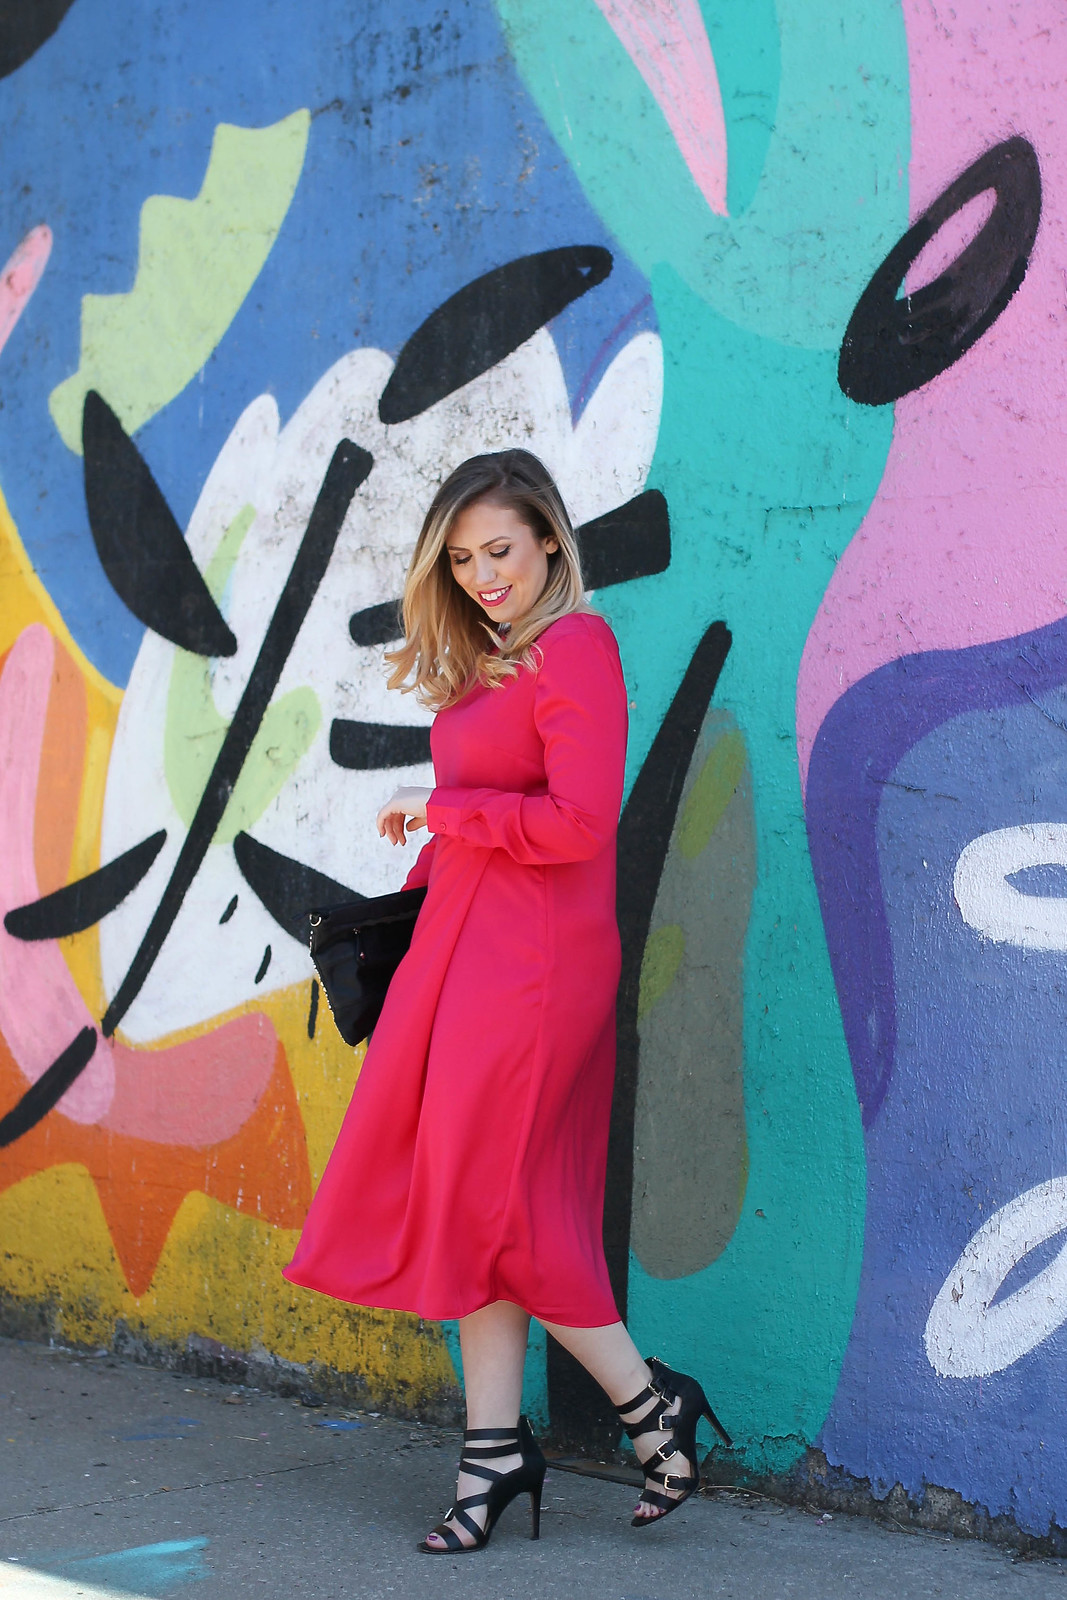 Modest Fashion Who What Wear Hot Pink Long Sleeve Midi Dress Outfit Target Style Living After Midnite Jackie Giardina Blogger